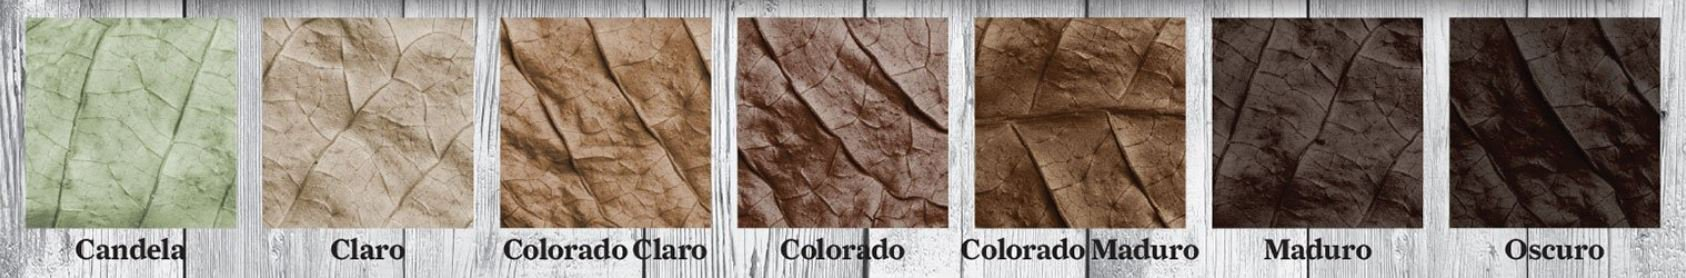 5 things about maduro cigars darker cigar wrappers guide